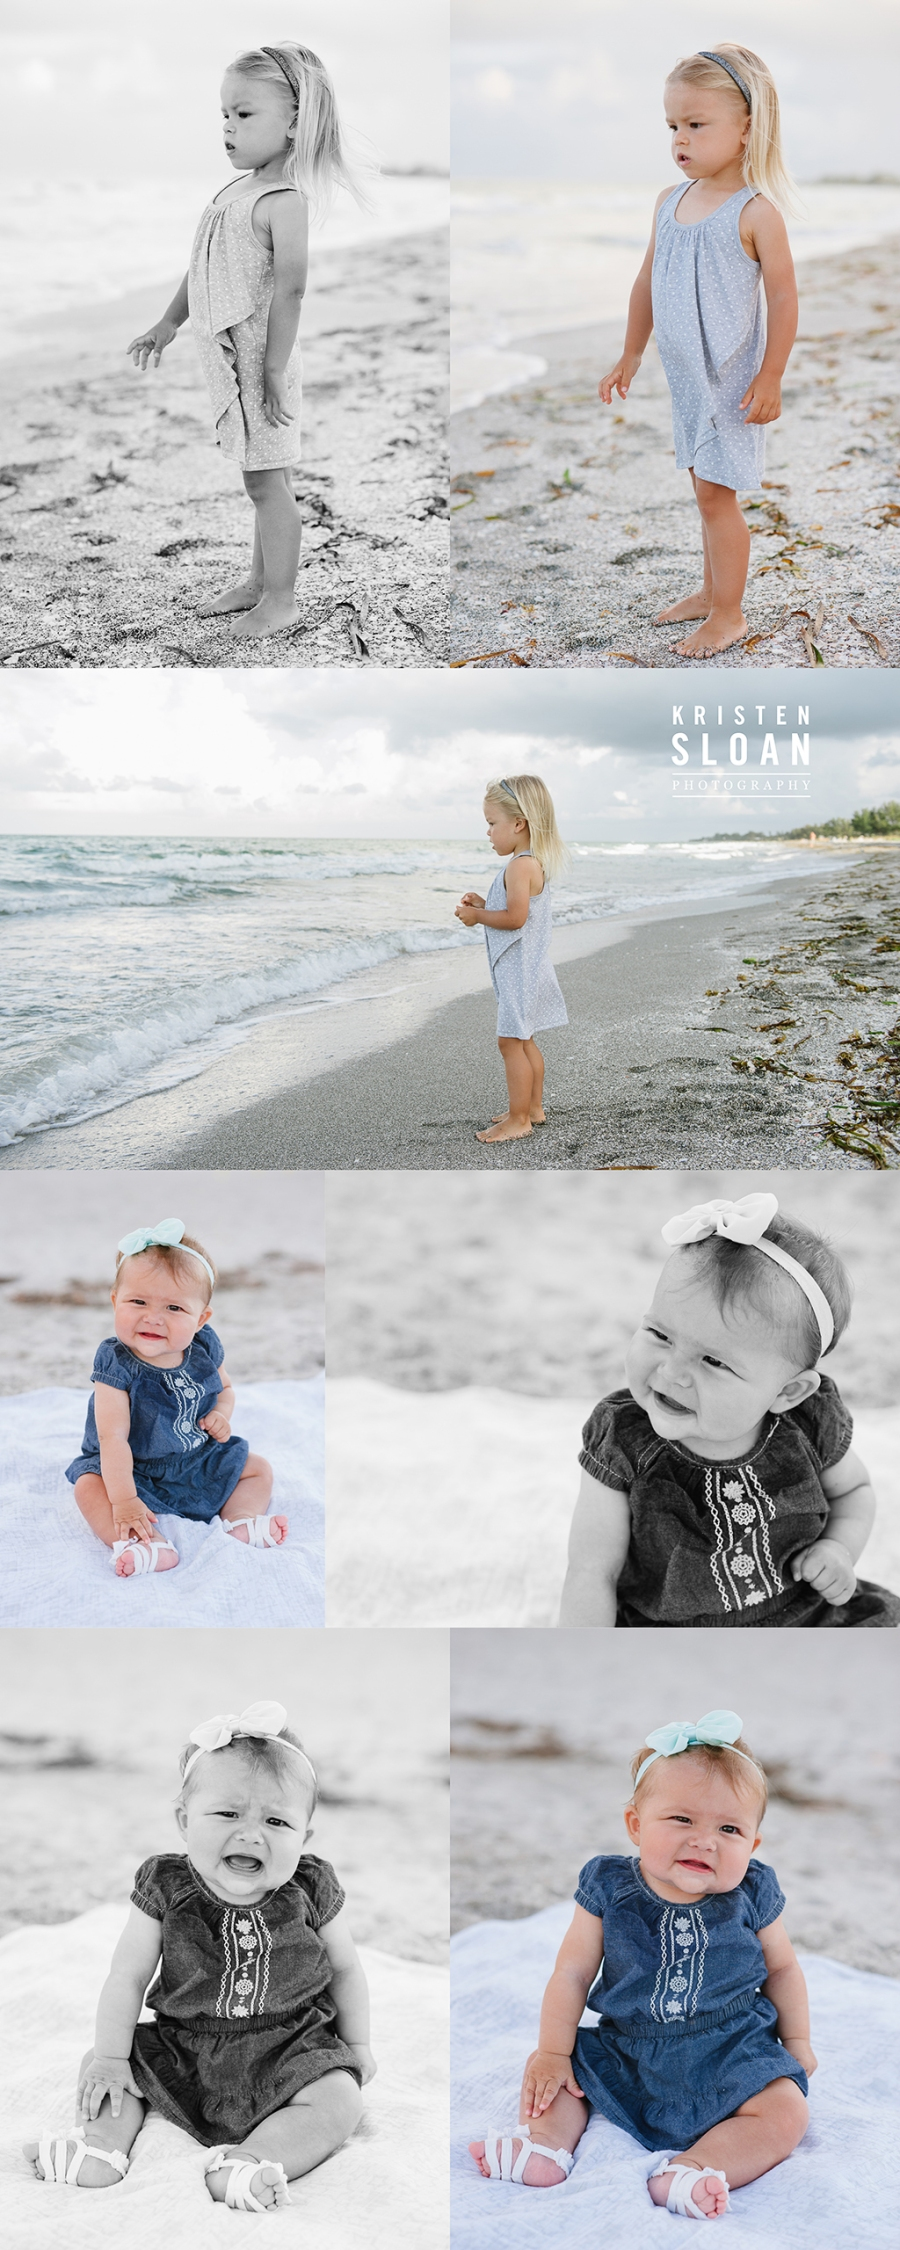 Longboat Key Little Gull Cottages Family Kids Beach Portraits by Kristen Sloan Photography